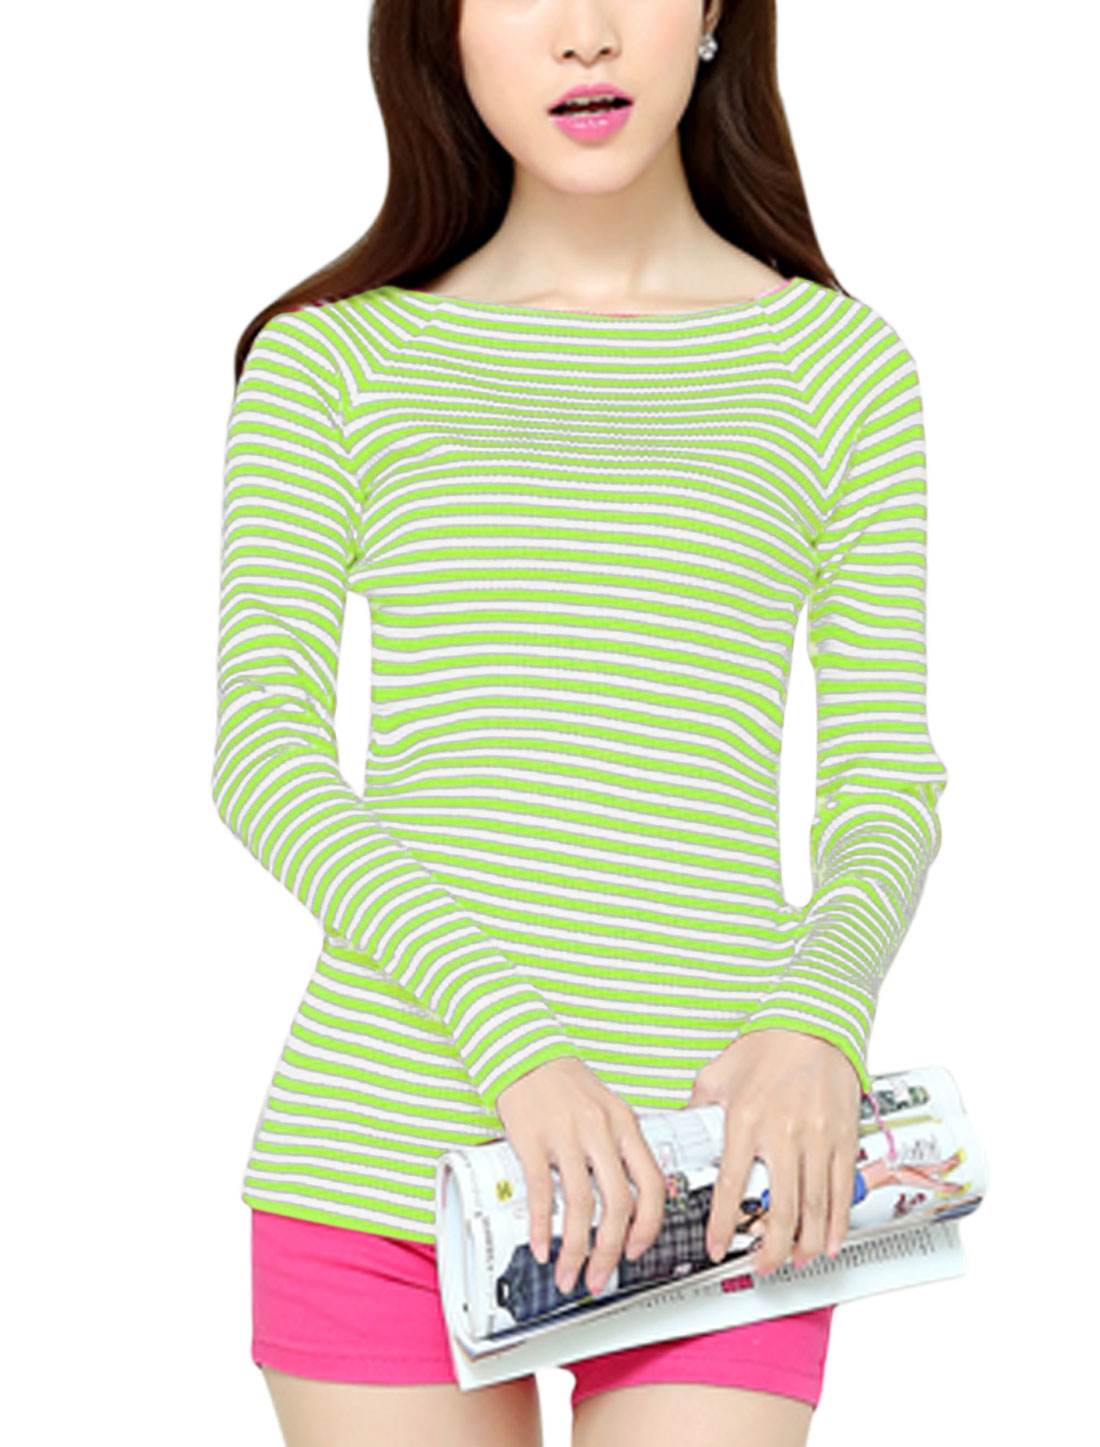 Lady Raglan Sleeves Stripes Cozy Fit Green White Knit Shirt XS